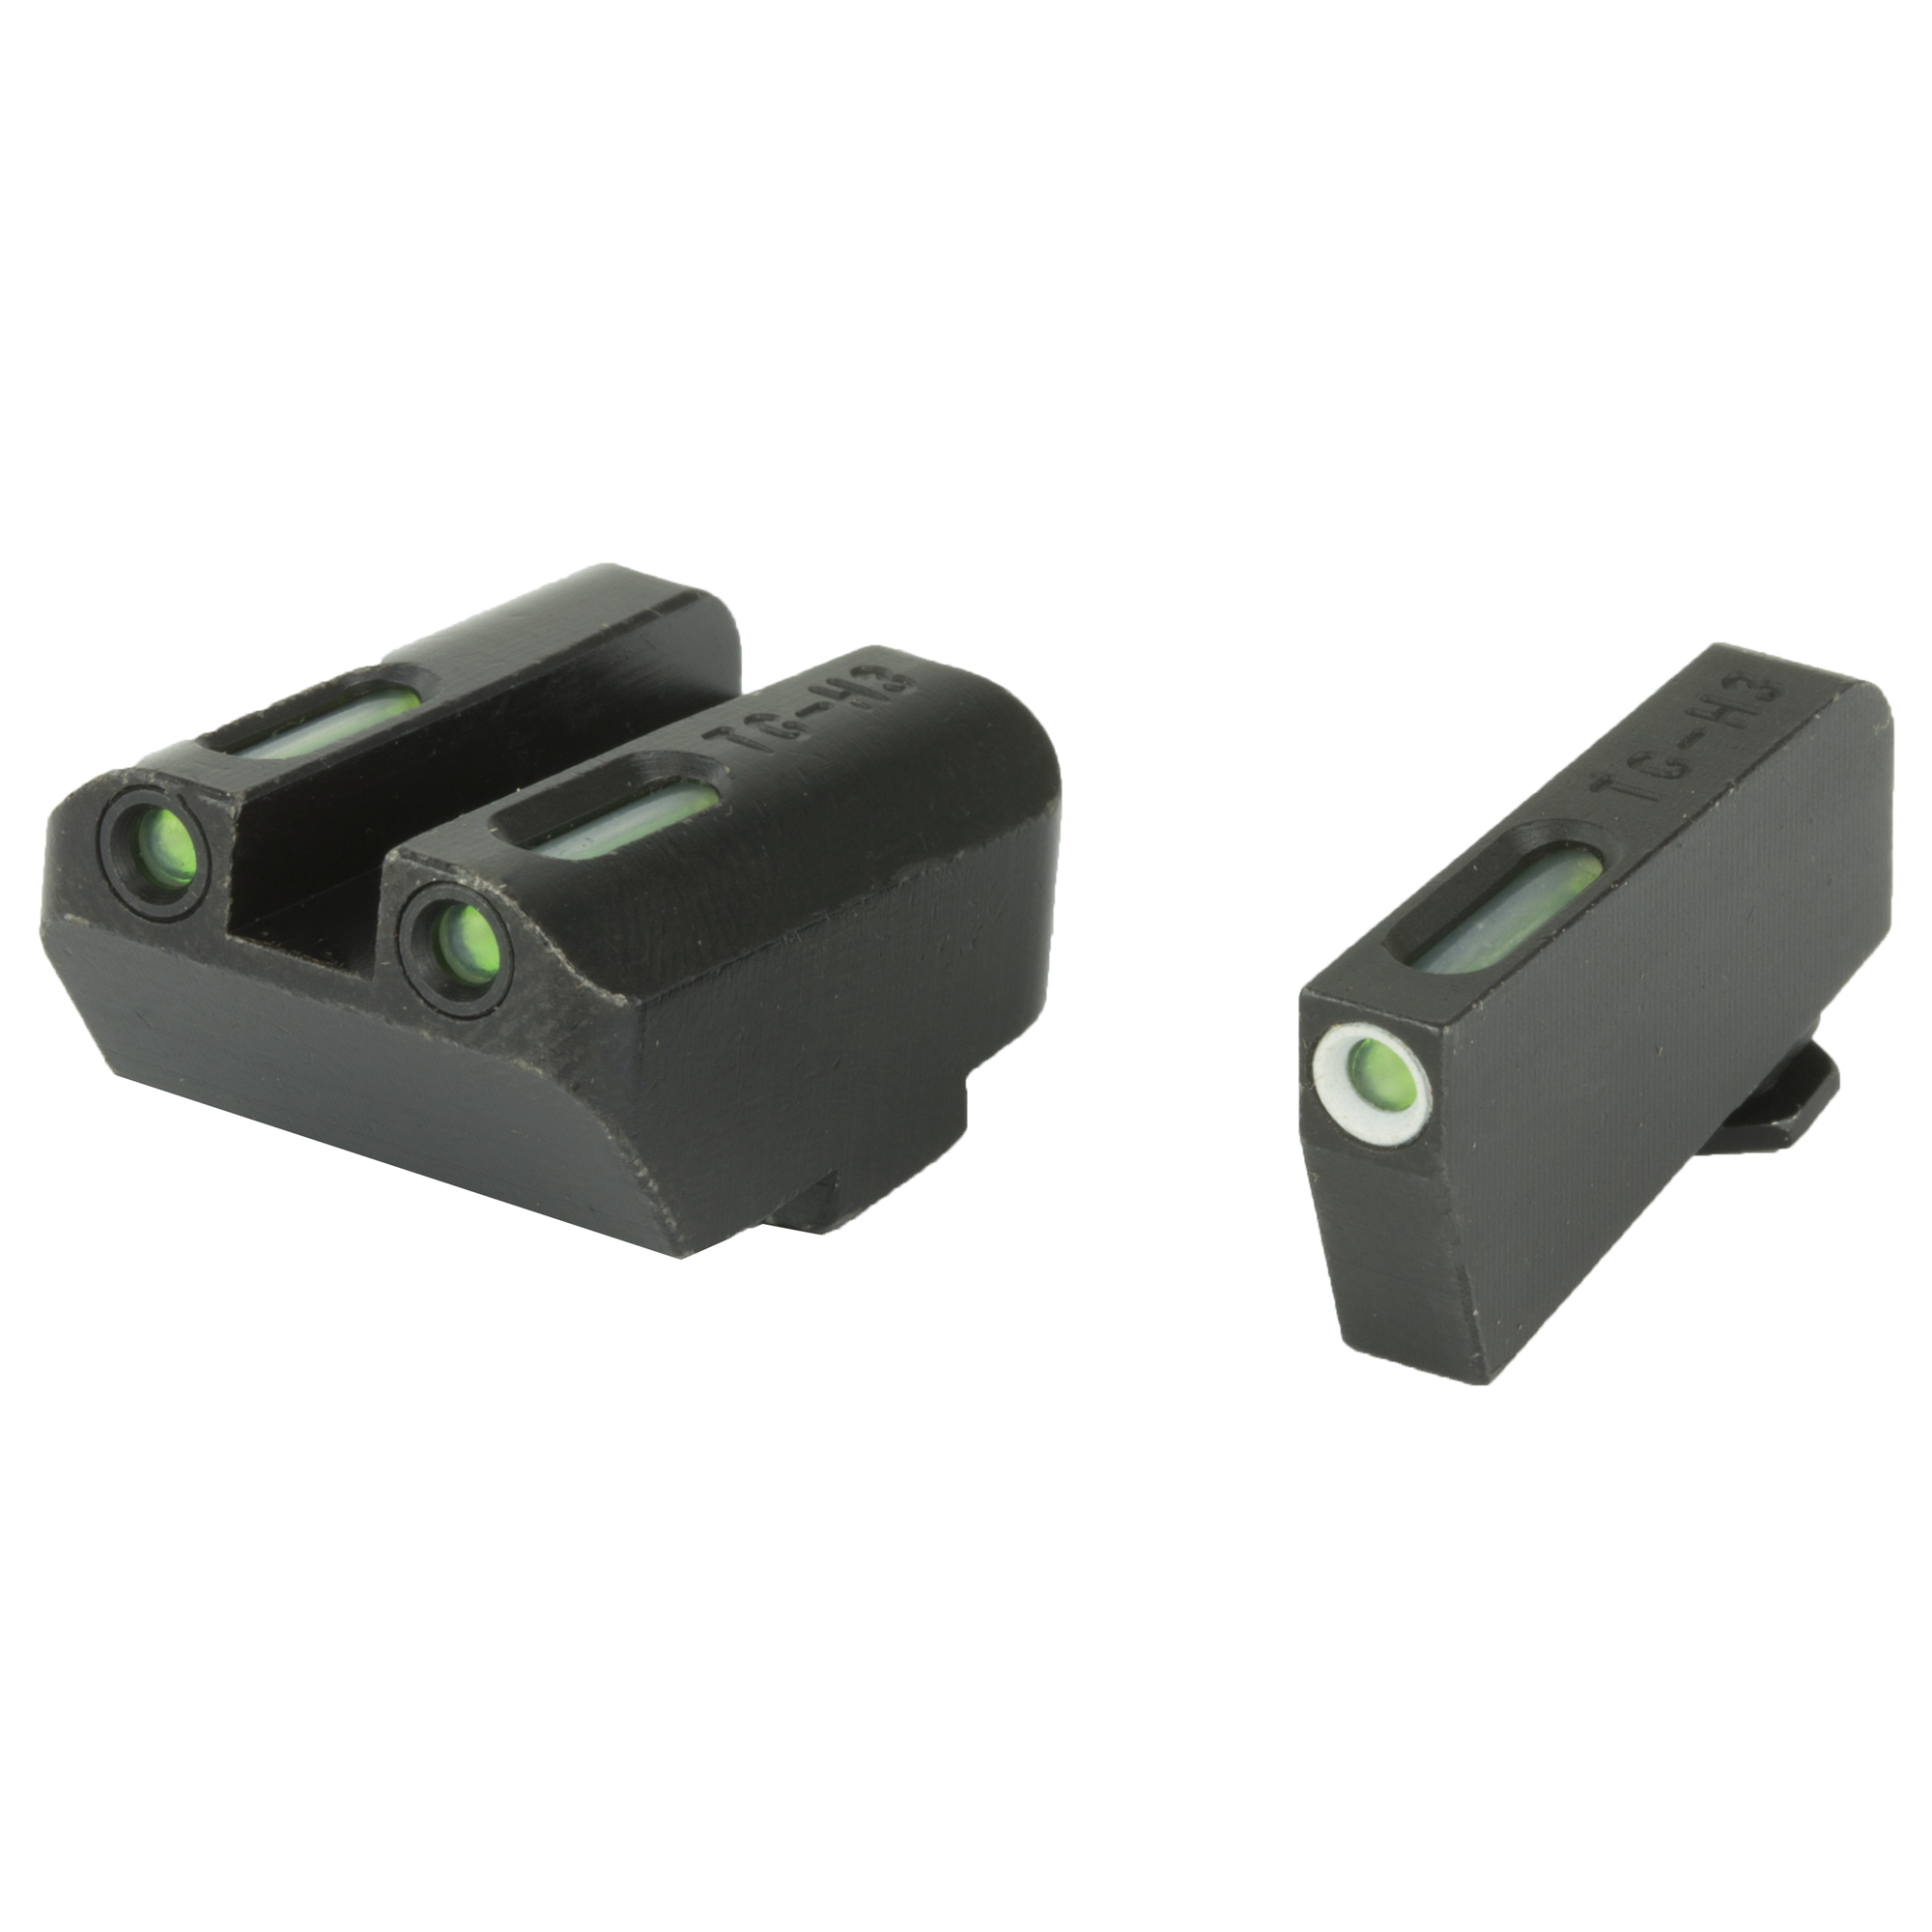 The TFX series of day/night sights features a 3-dot configuration with front and rear tritium illumination. The front sight features a white front focus lock ring which aids in front sight acquisition during normal daylight hours. The rear sight features a square notch style profile. The housing is made of high quality steel with a matte black finish. If you are concerned about your ability to make quality hits on target during a potential night time encounter then pick up yourself a set of the new TFX series sights from TruGlo.